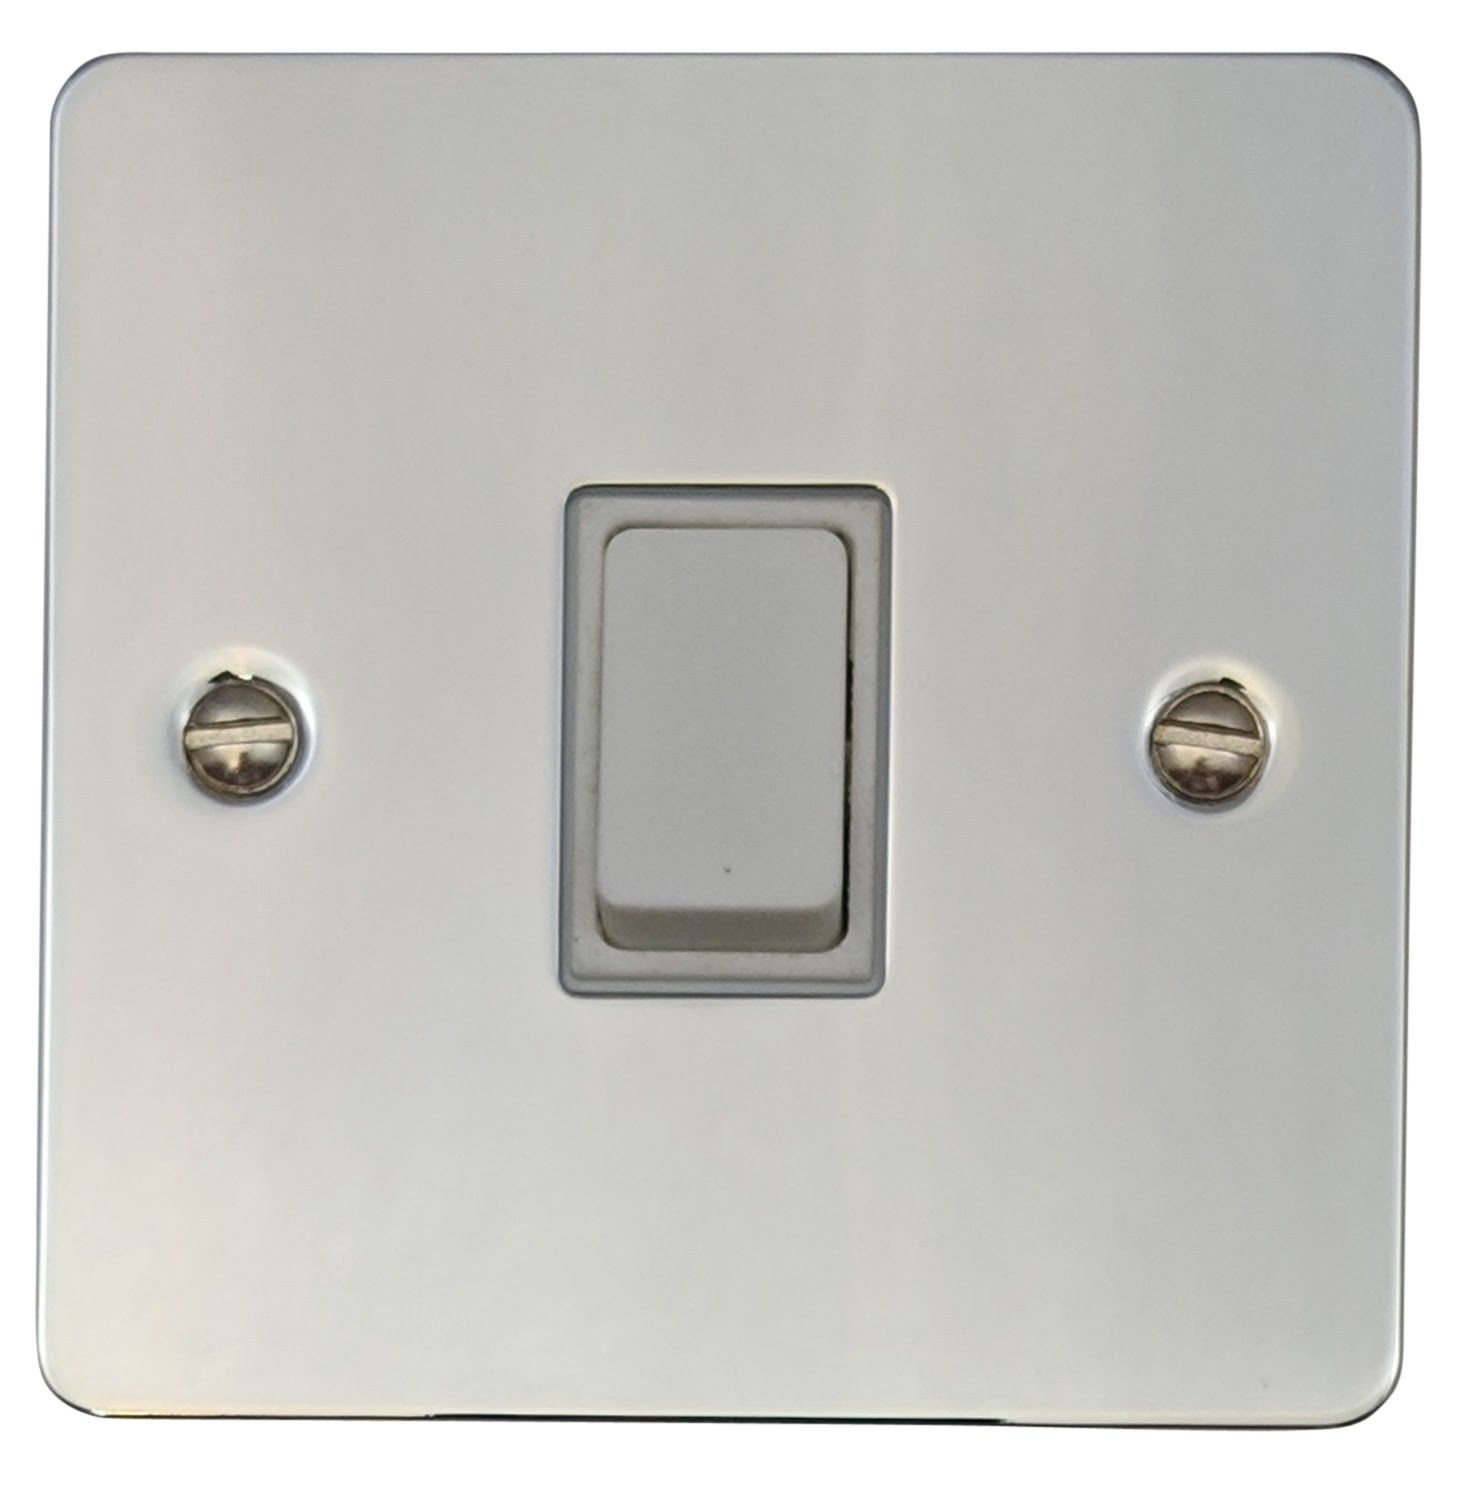 Gh fc1w flat plate polished chrome 1 gang 1 or 2 way rocker light gh fc1w flat plate polished chrome 1 gang 1 or 2 way rocker light switch publicscrutiny Images